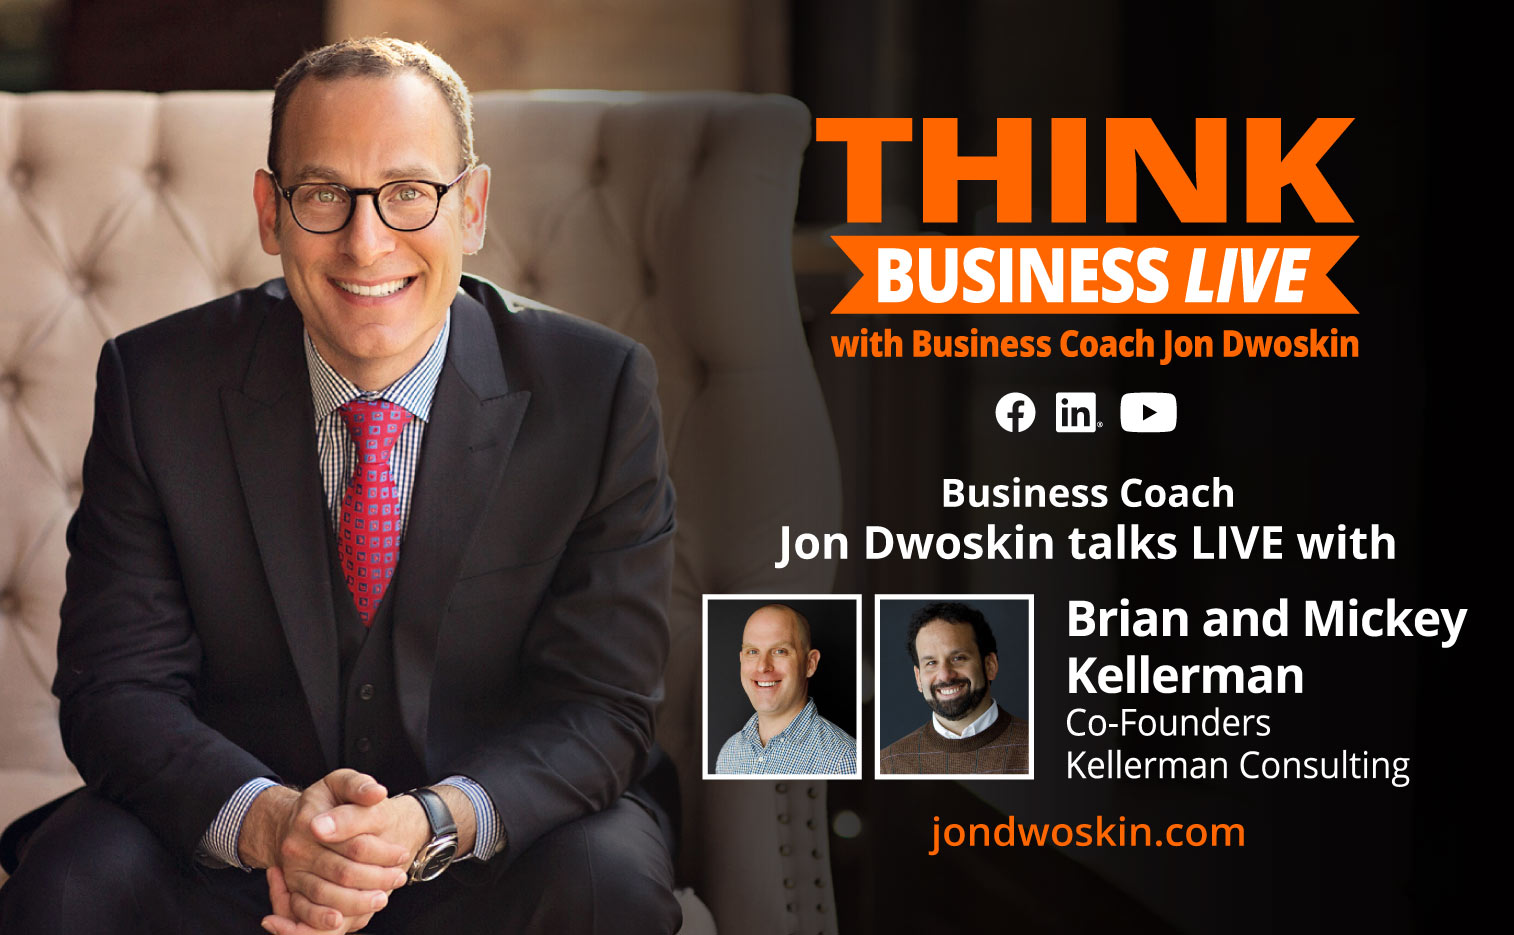 THINK Business LIVE: Jon Dwoskin Talks with Brian and Mikey Kellerman